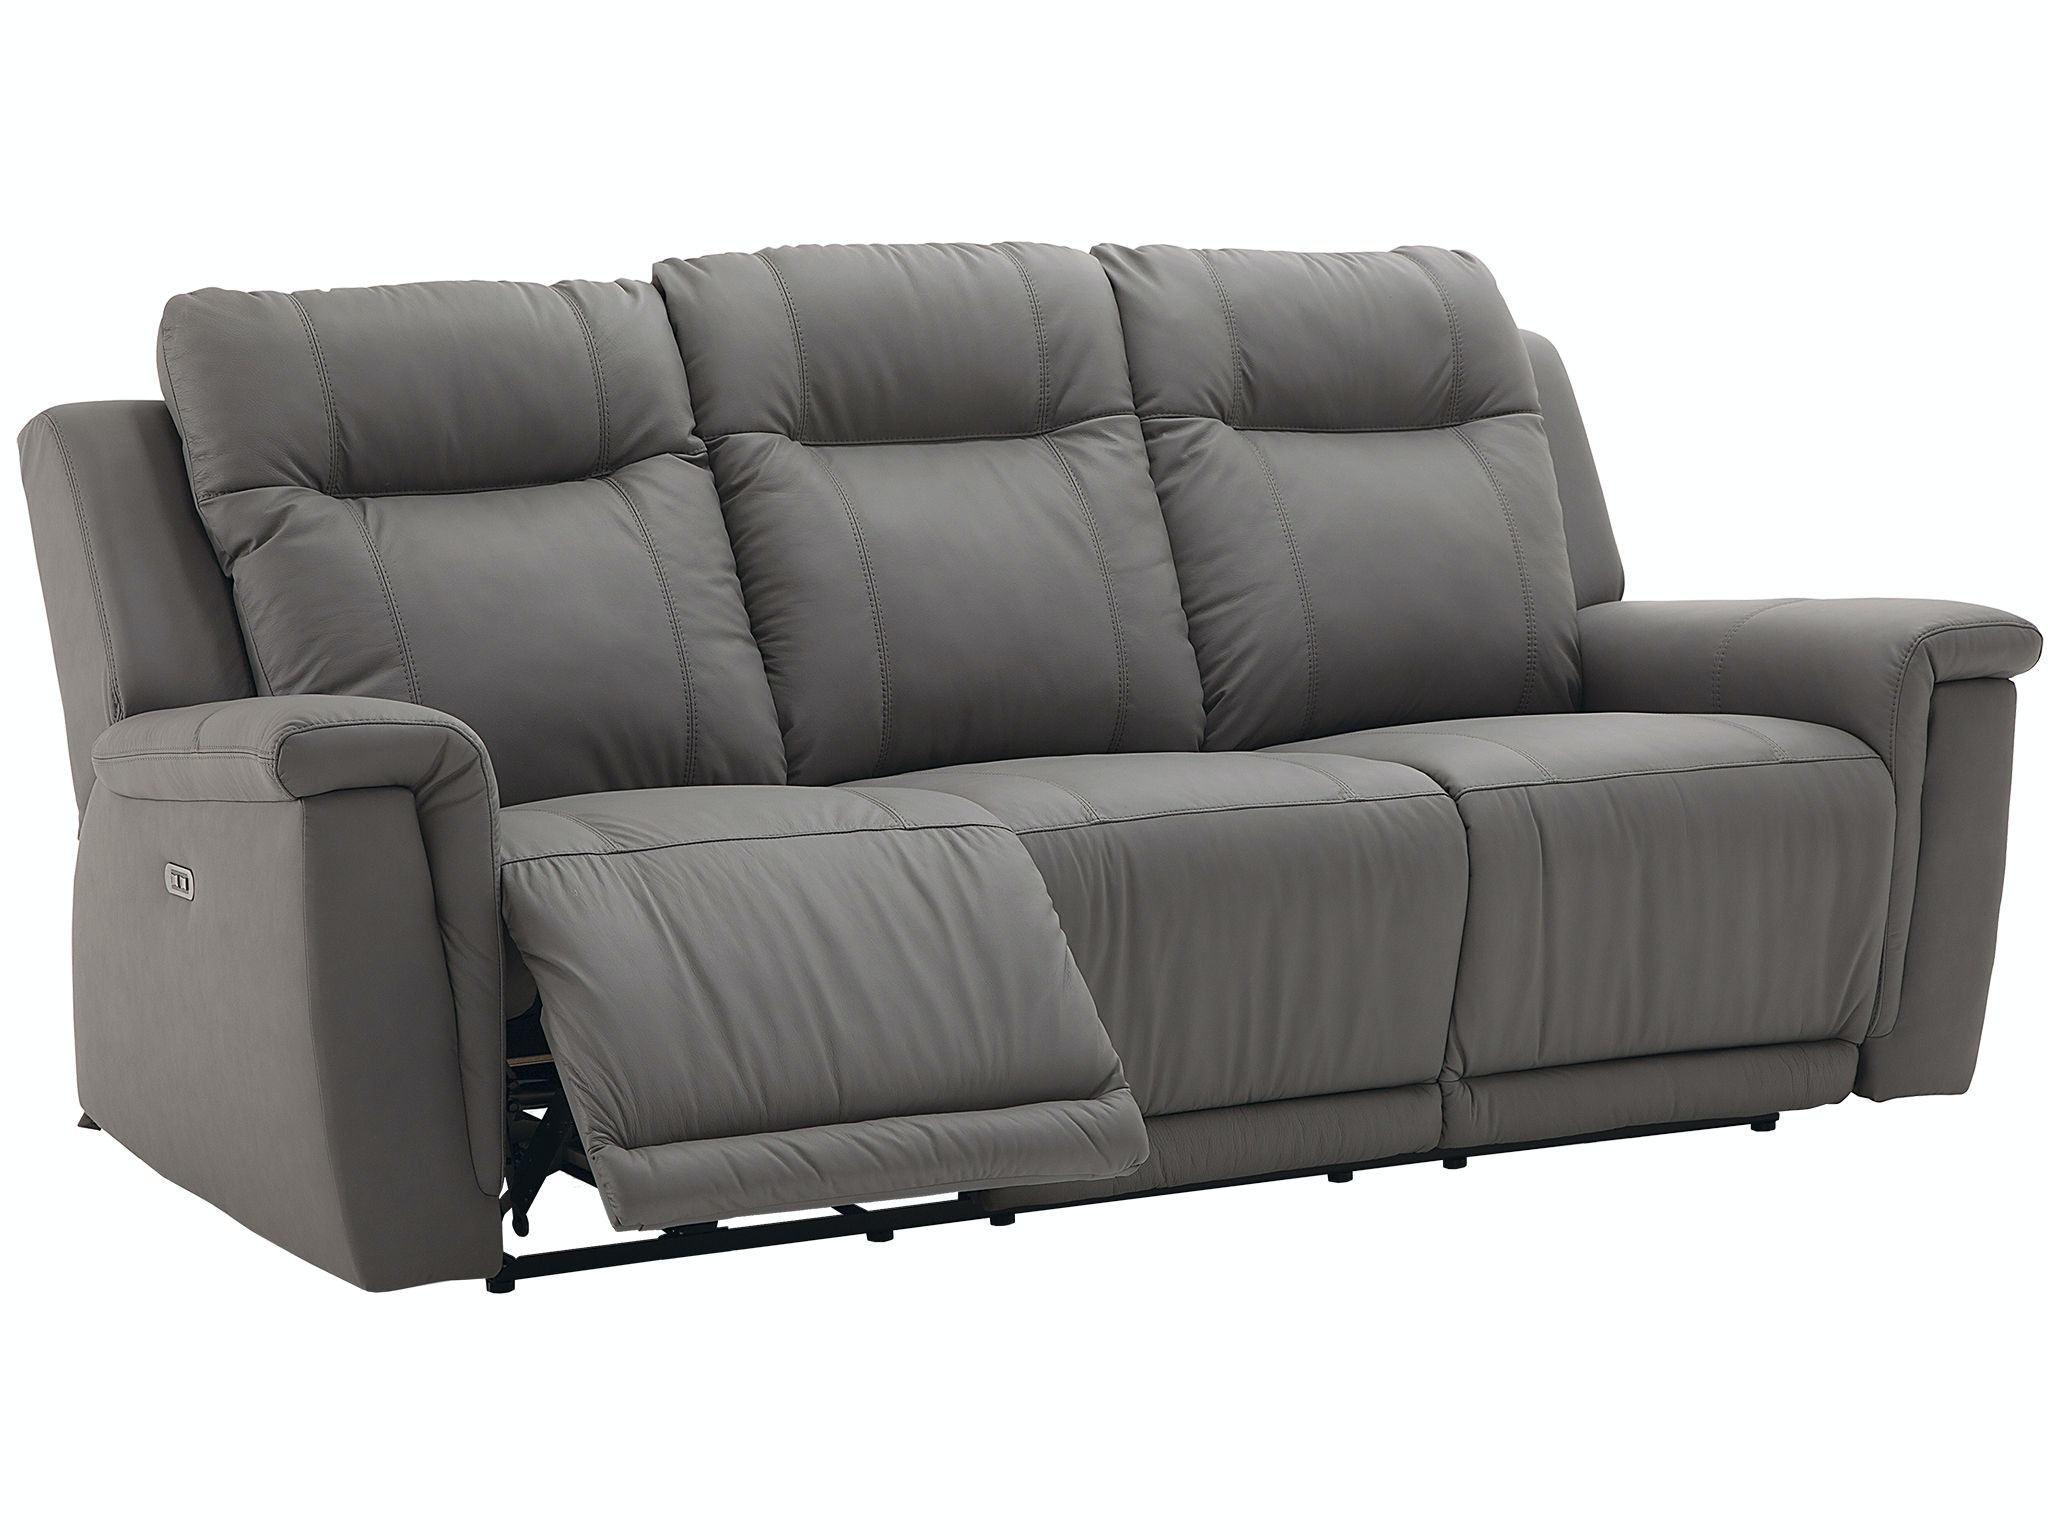 Palliser Furniture Power Sofa Recliner 41055 61